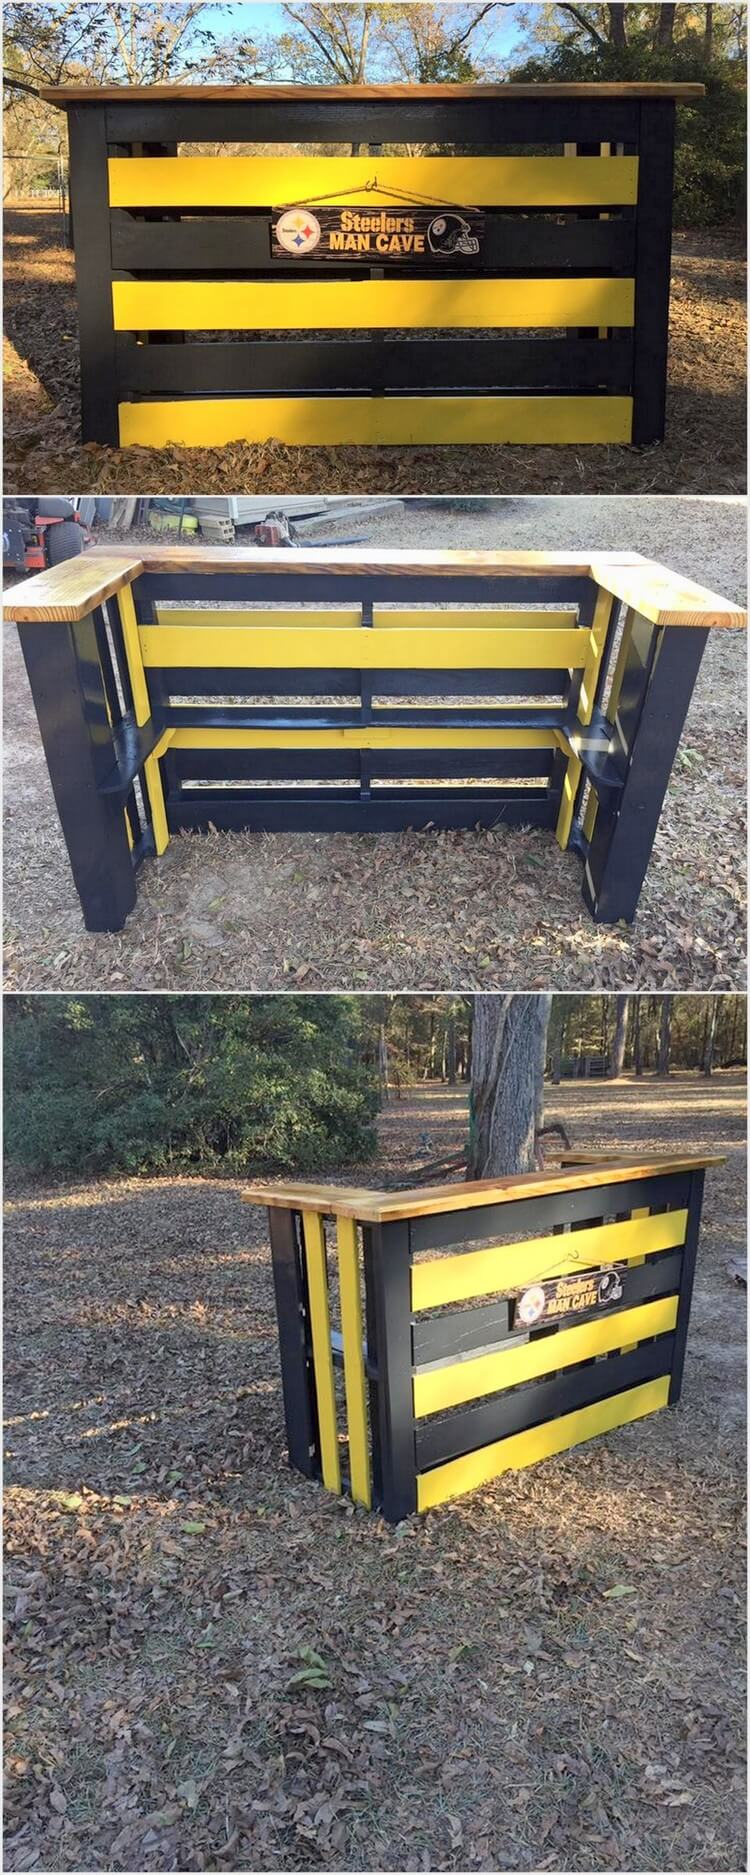 Inspiring DIY Ideas With Old Wood Pallets Pallet